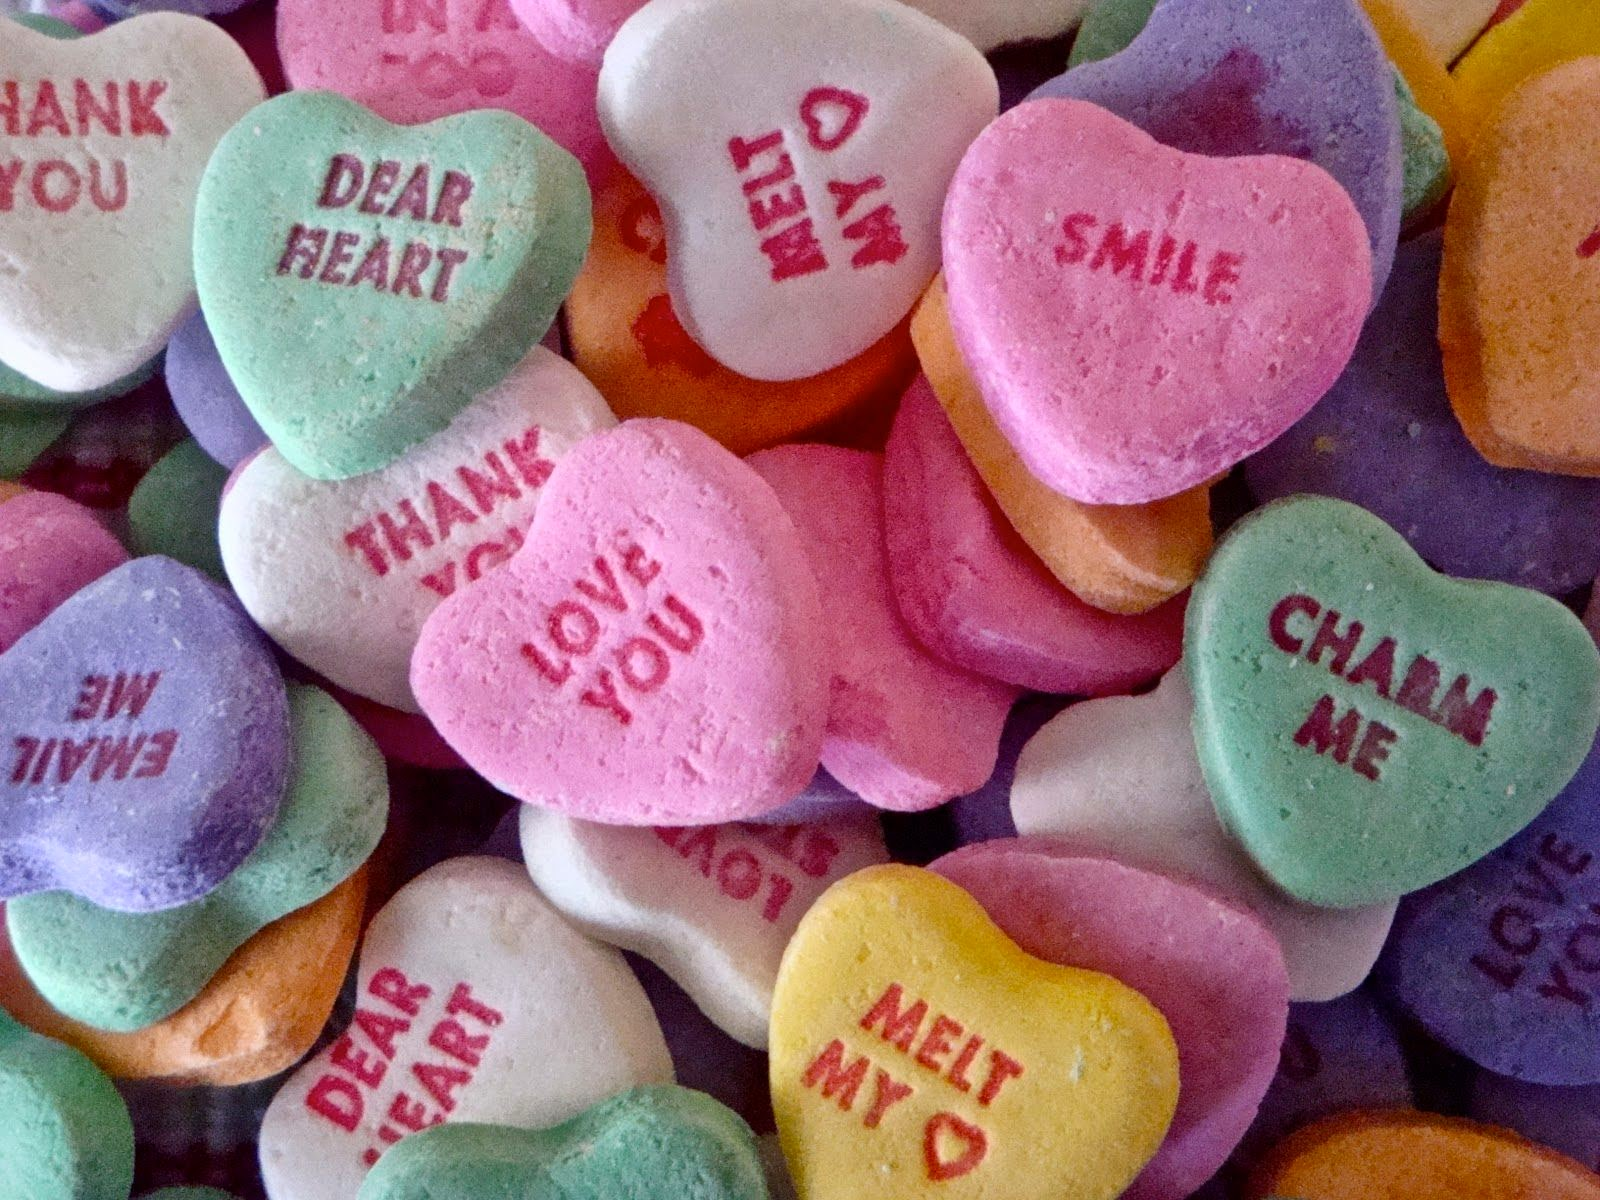 Valentine Candy Hearts Images, Stock Photos & Vectors Pictures of candy heart messages